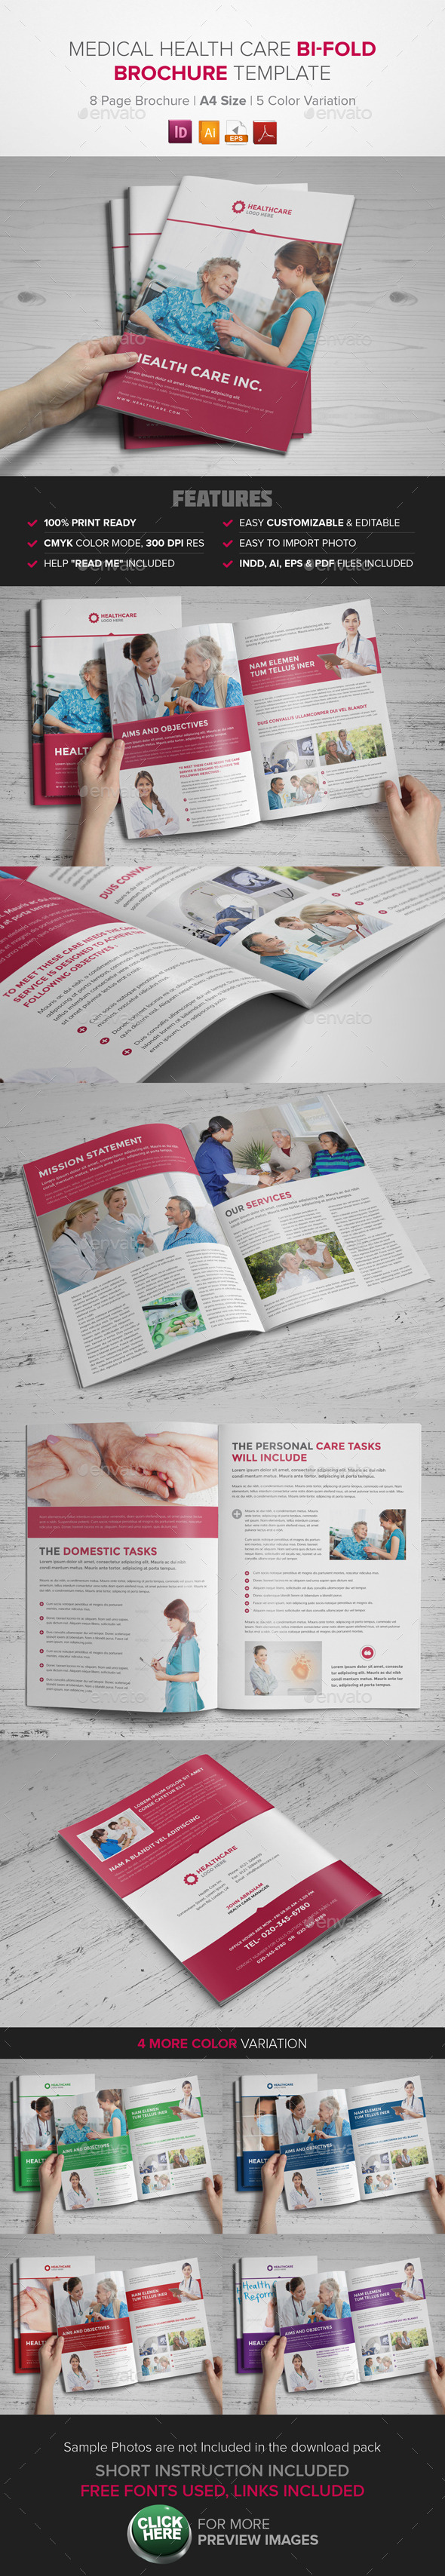 Medical Health Care Brochure - Corporate Brochures